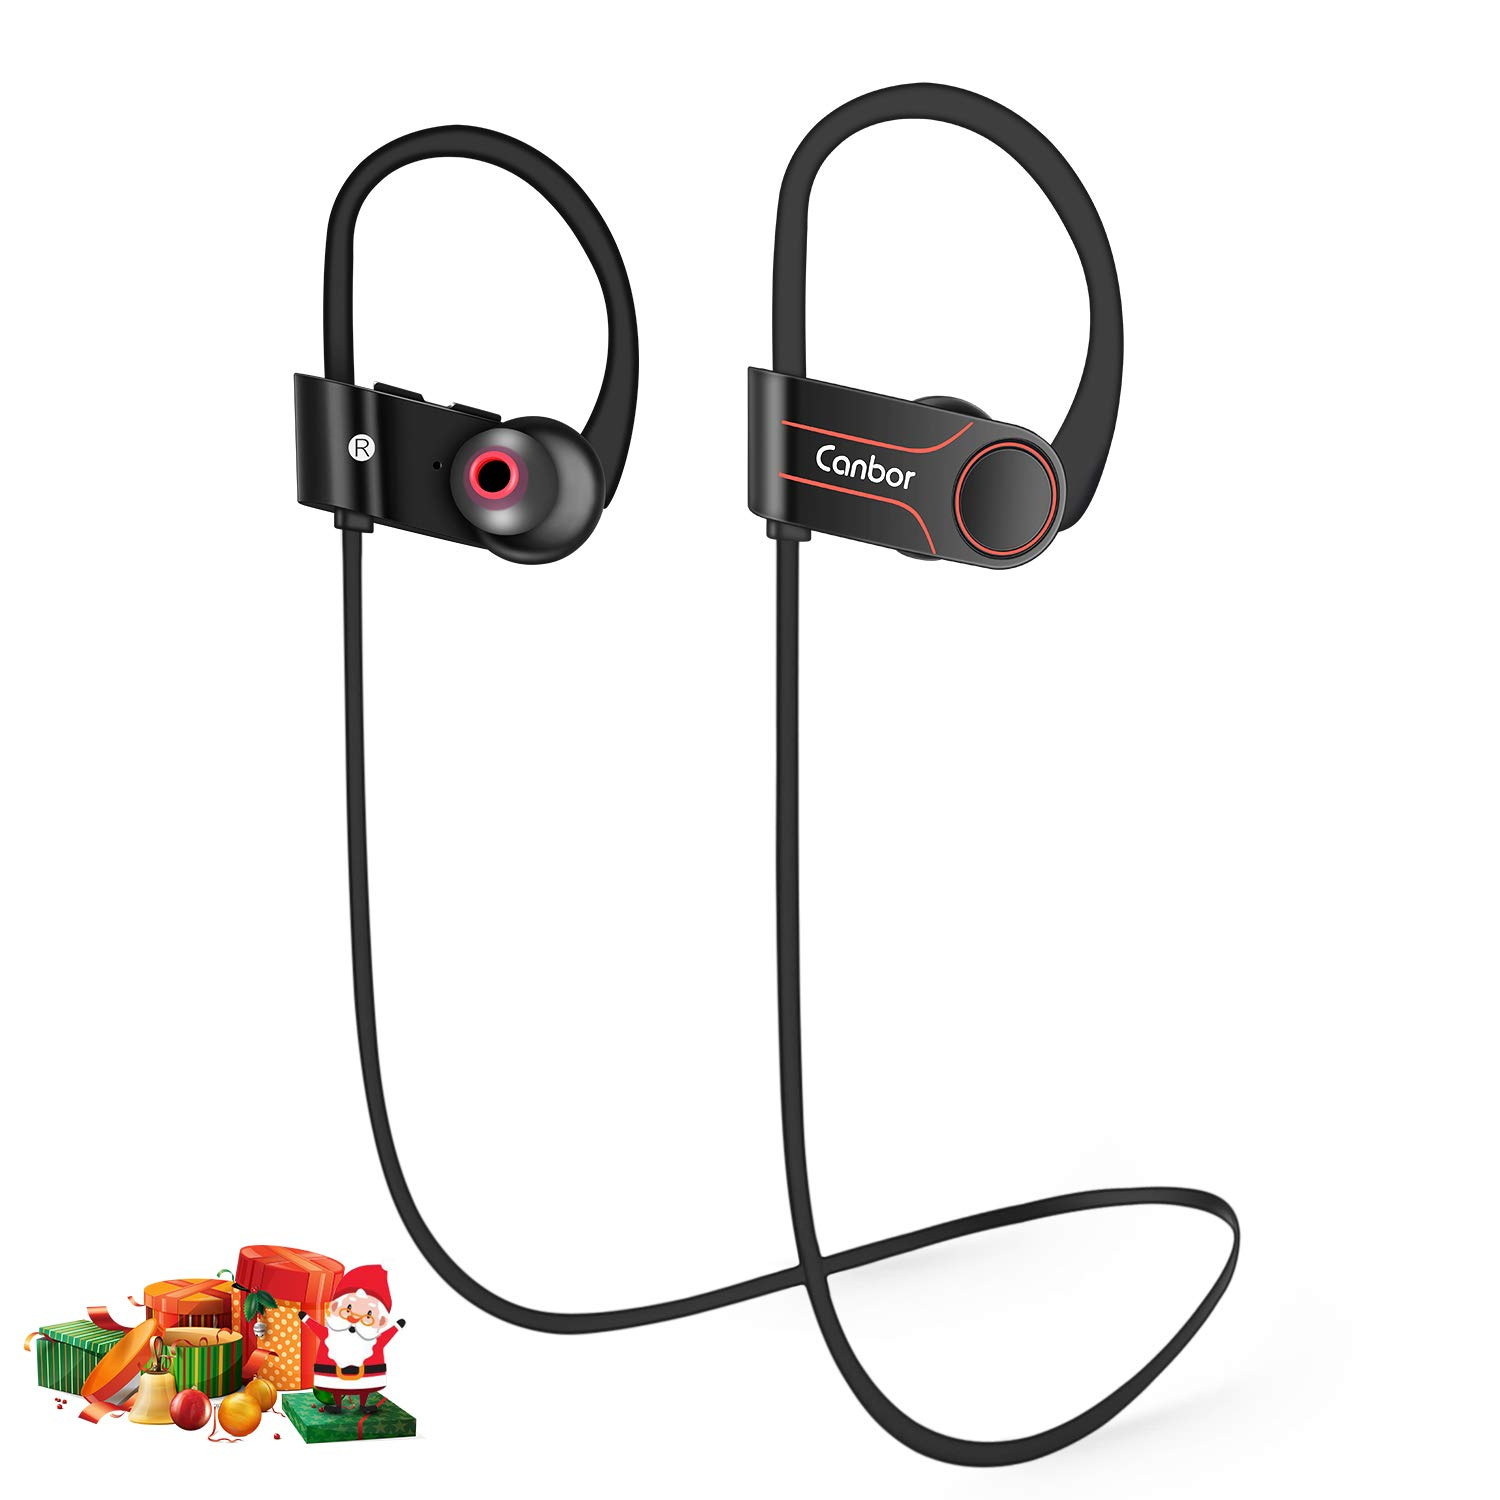 Canbor Bluetooth Headphones Wireless Earphones with Bluetooth 4.1 Sport Stereo Headset, IPX7 Sweatproof Earphones for Running Workout Gym